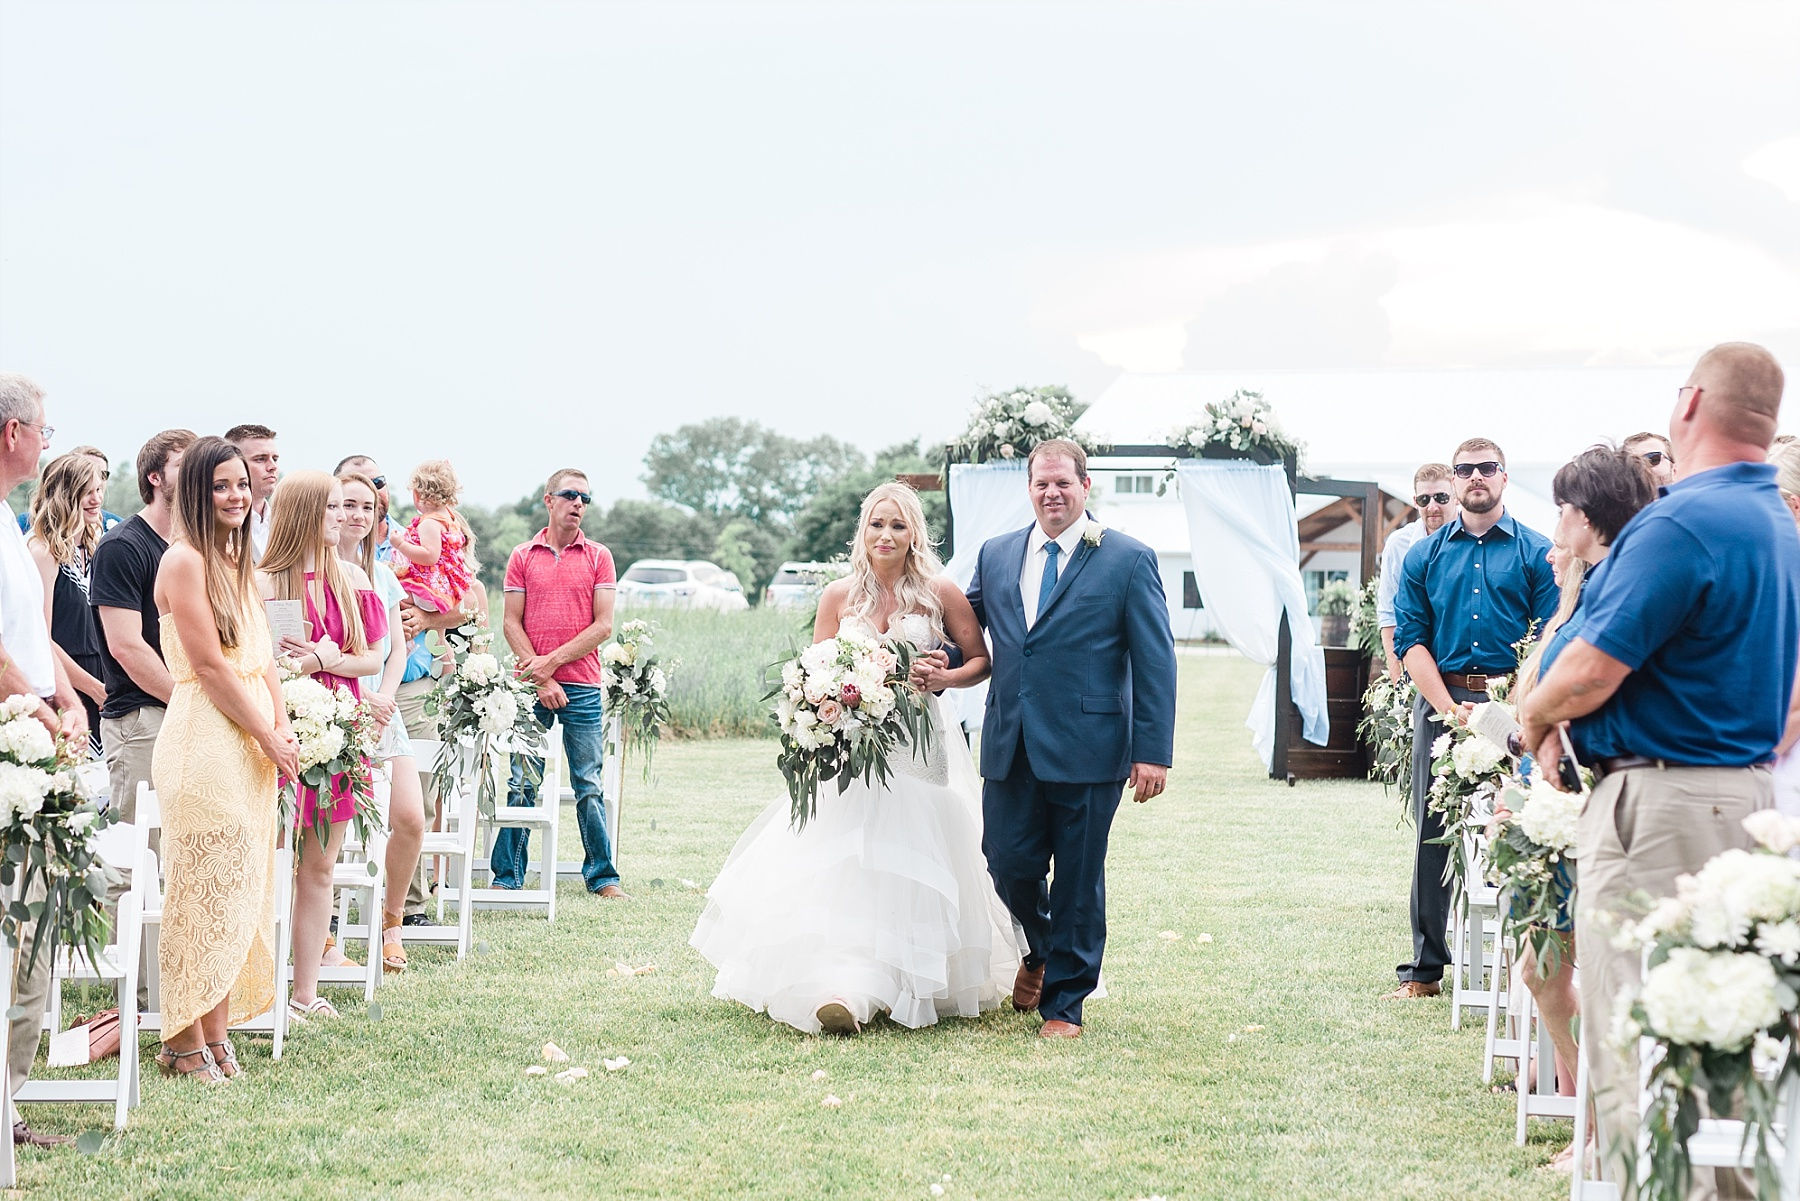 Stunning Heartfelt, Elegant, Fine Art, Chic, Outdoor Spring Wedding with Blush, Cream, Greenery, Rose Gold, and Sequins at Emerson Fields Venue by Kelsi Kliethermes Photography_0048.jpg